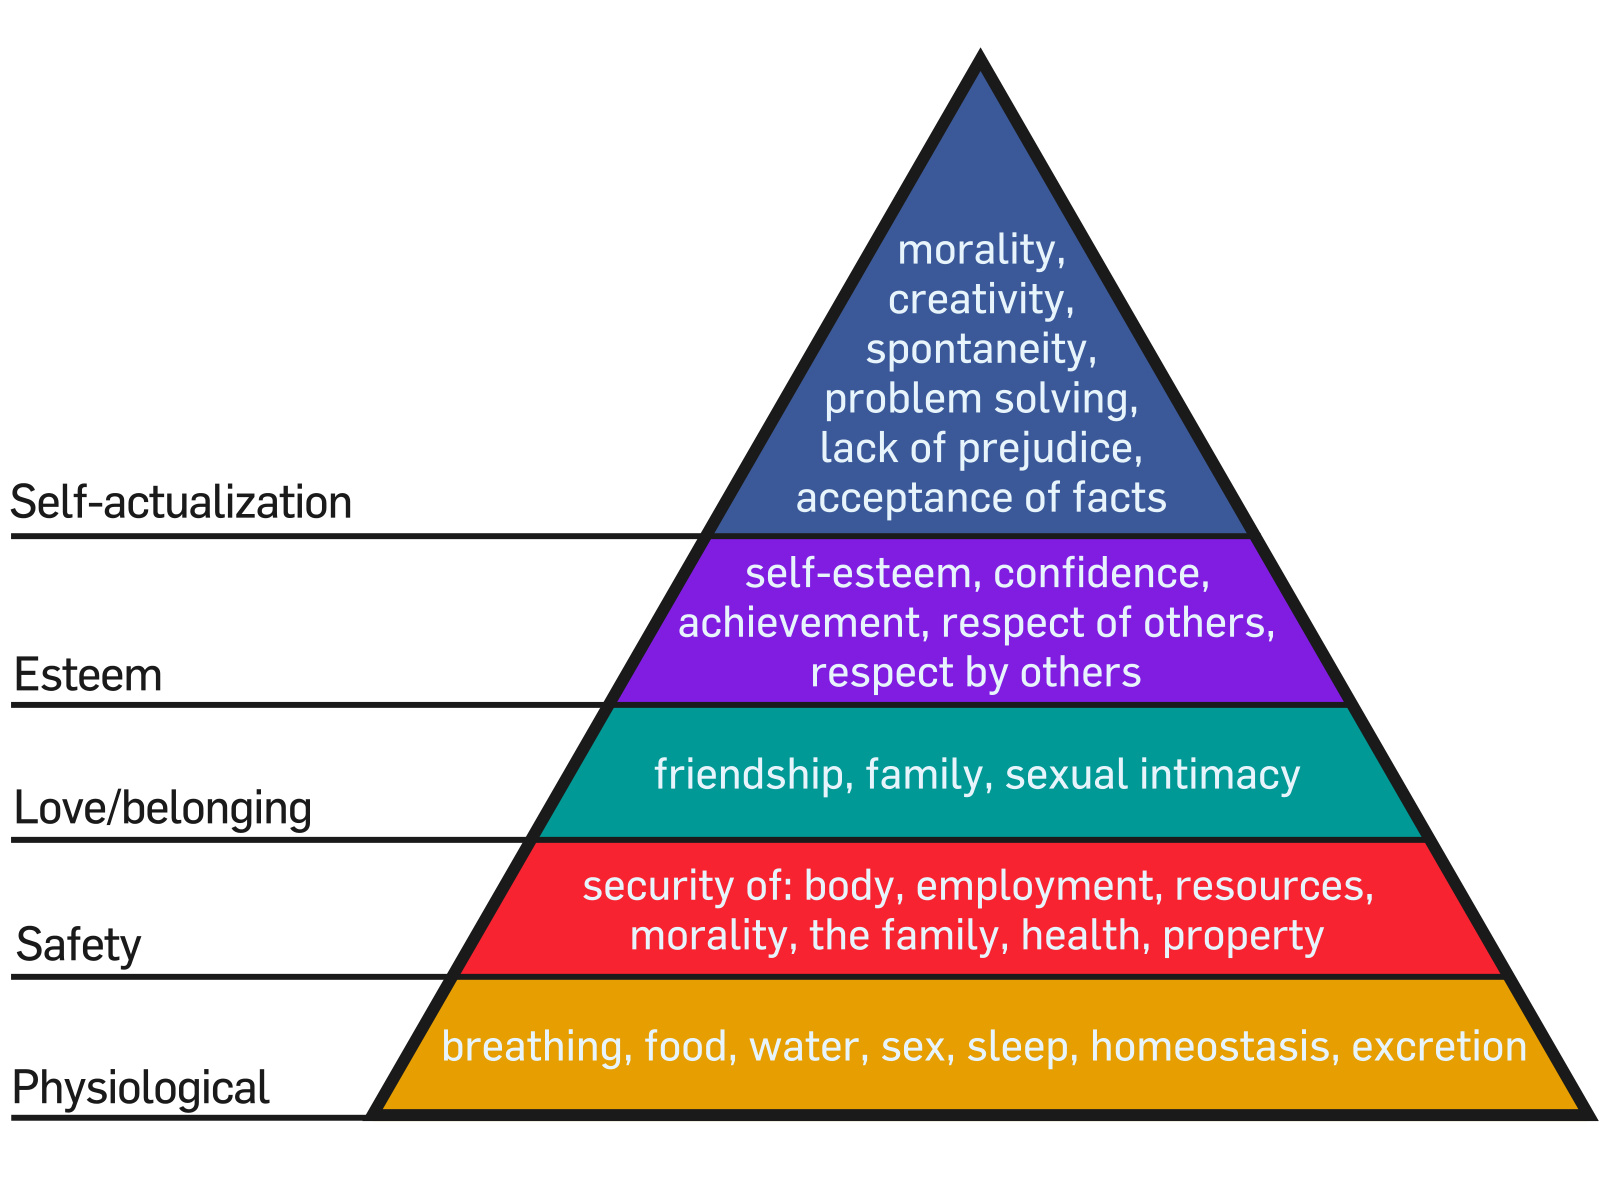 image maslow s hierarchy of needs png habitica wiki fandom